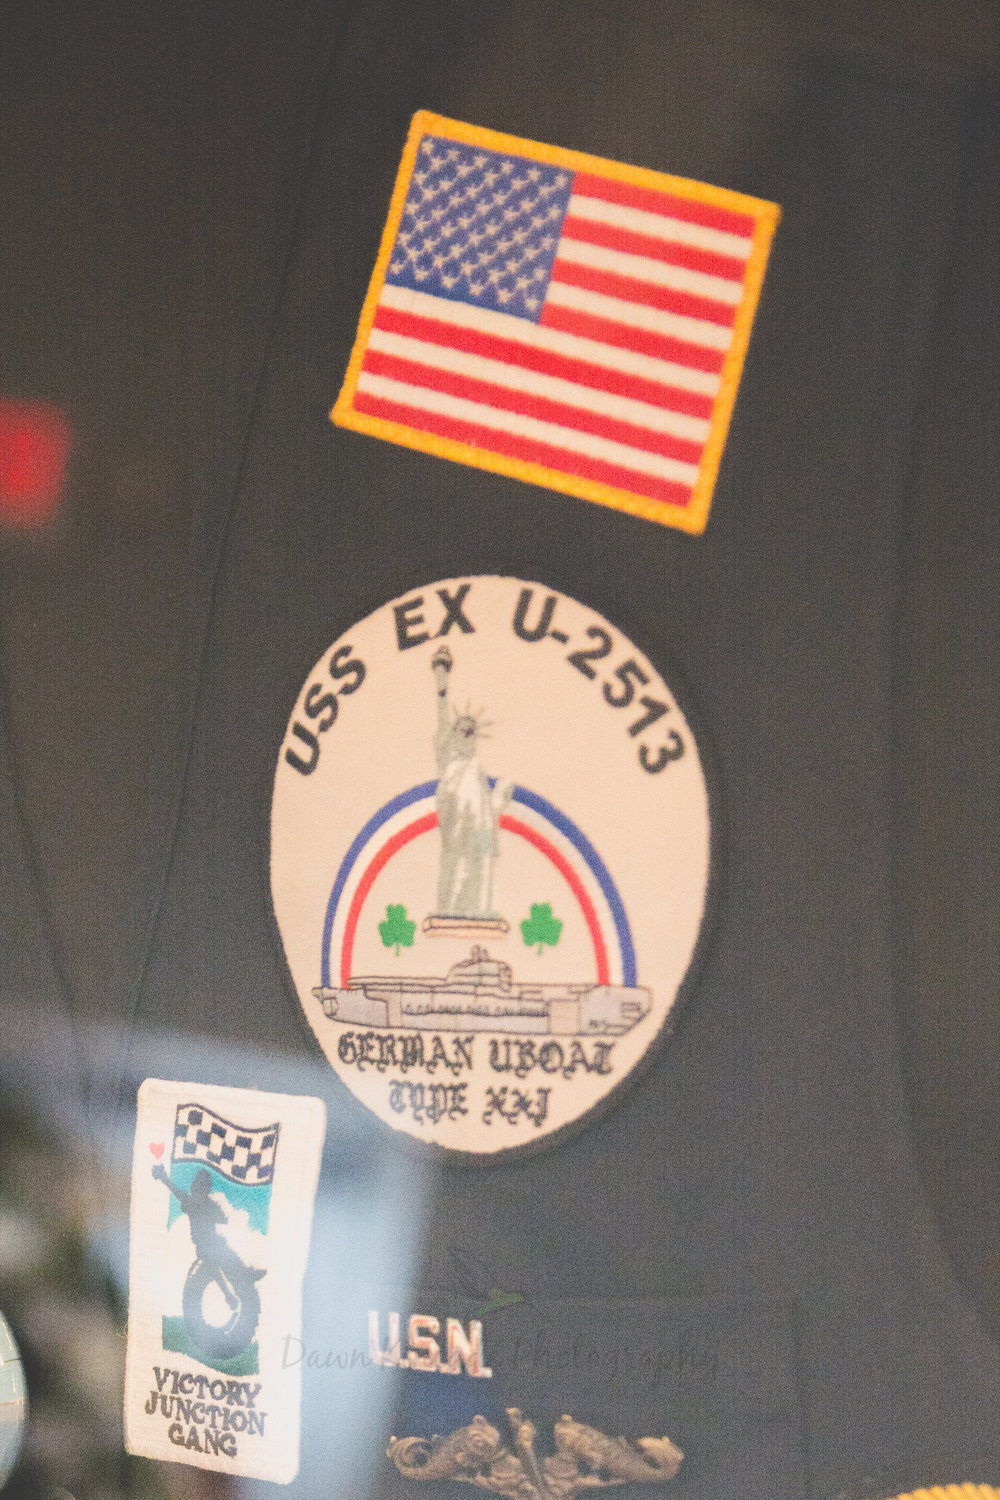 He served on the USS EX U-2513